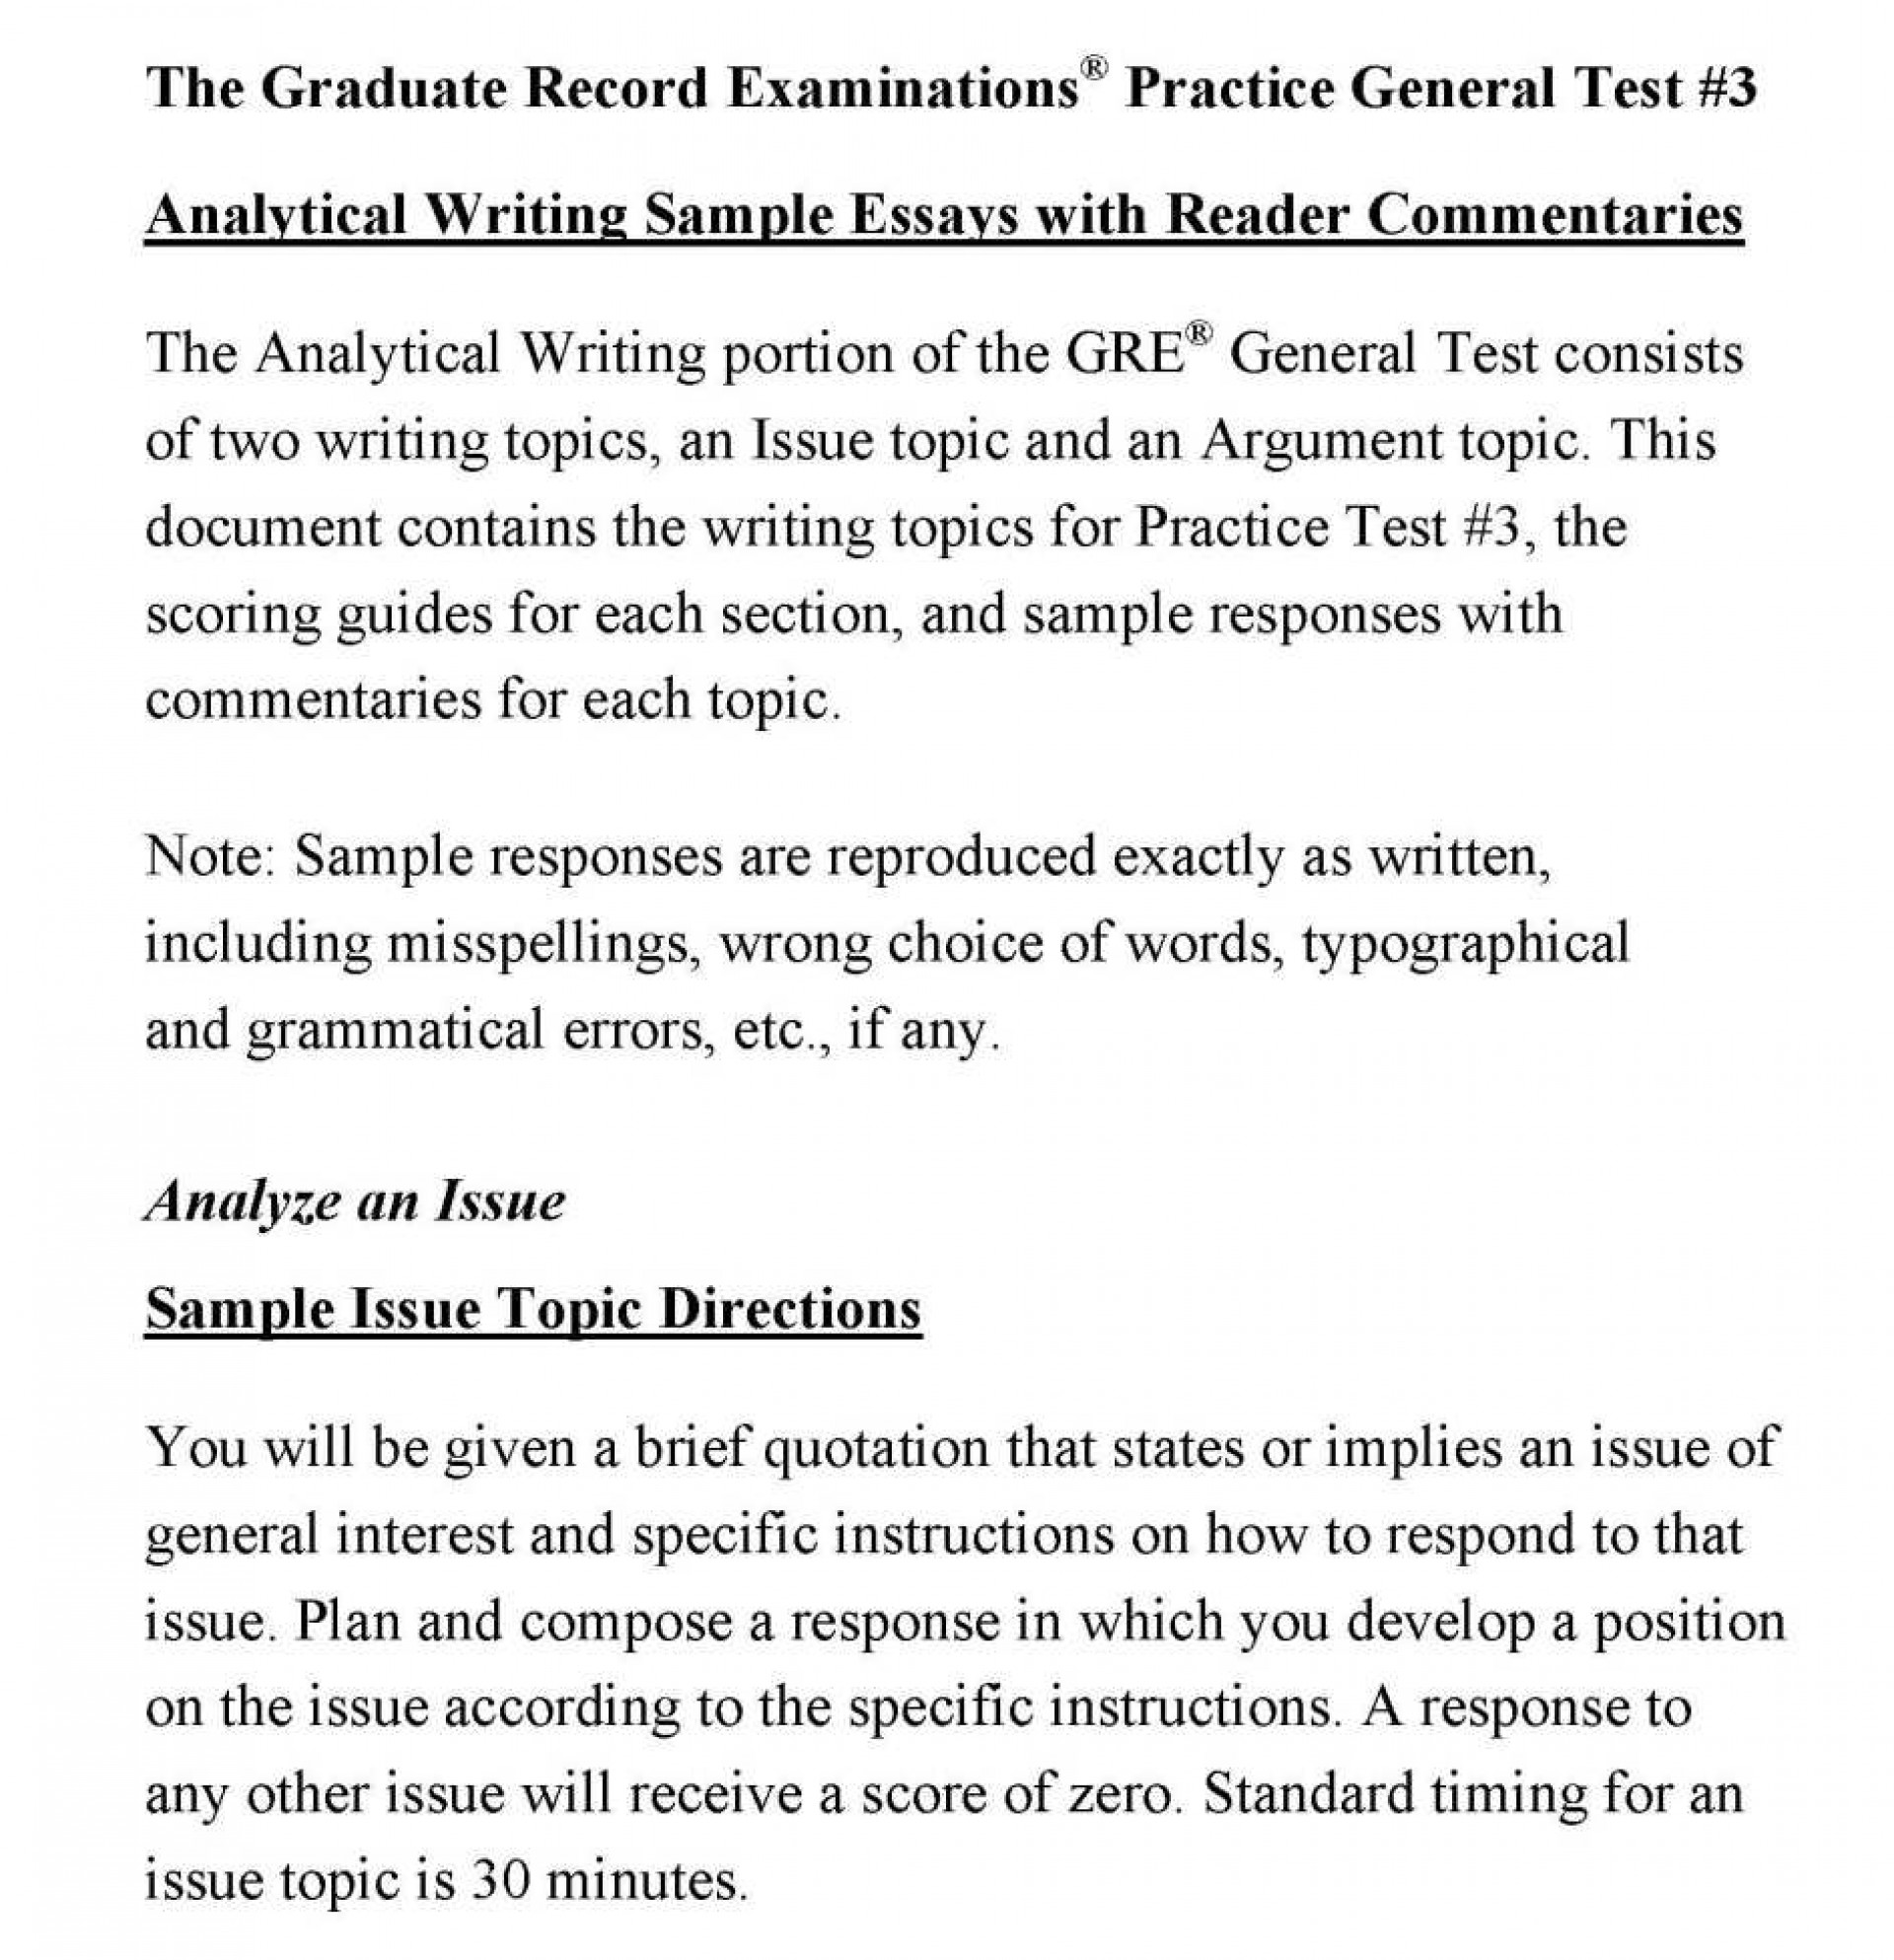 007 Essay Example How To Write Gre Analytical Writing Samples Stunning A Issue Great Essays 1920